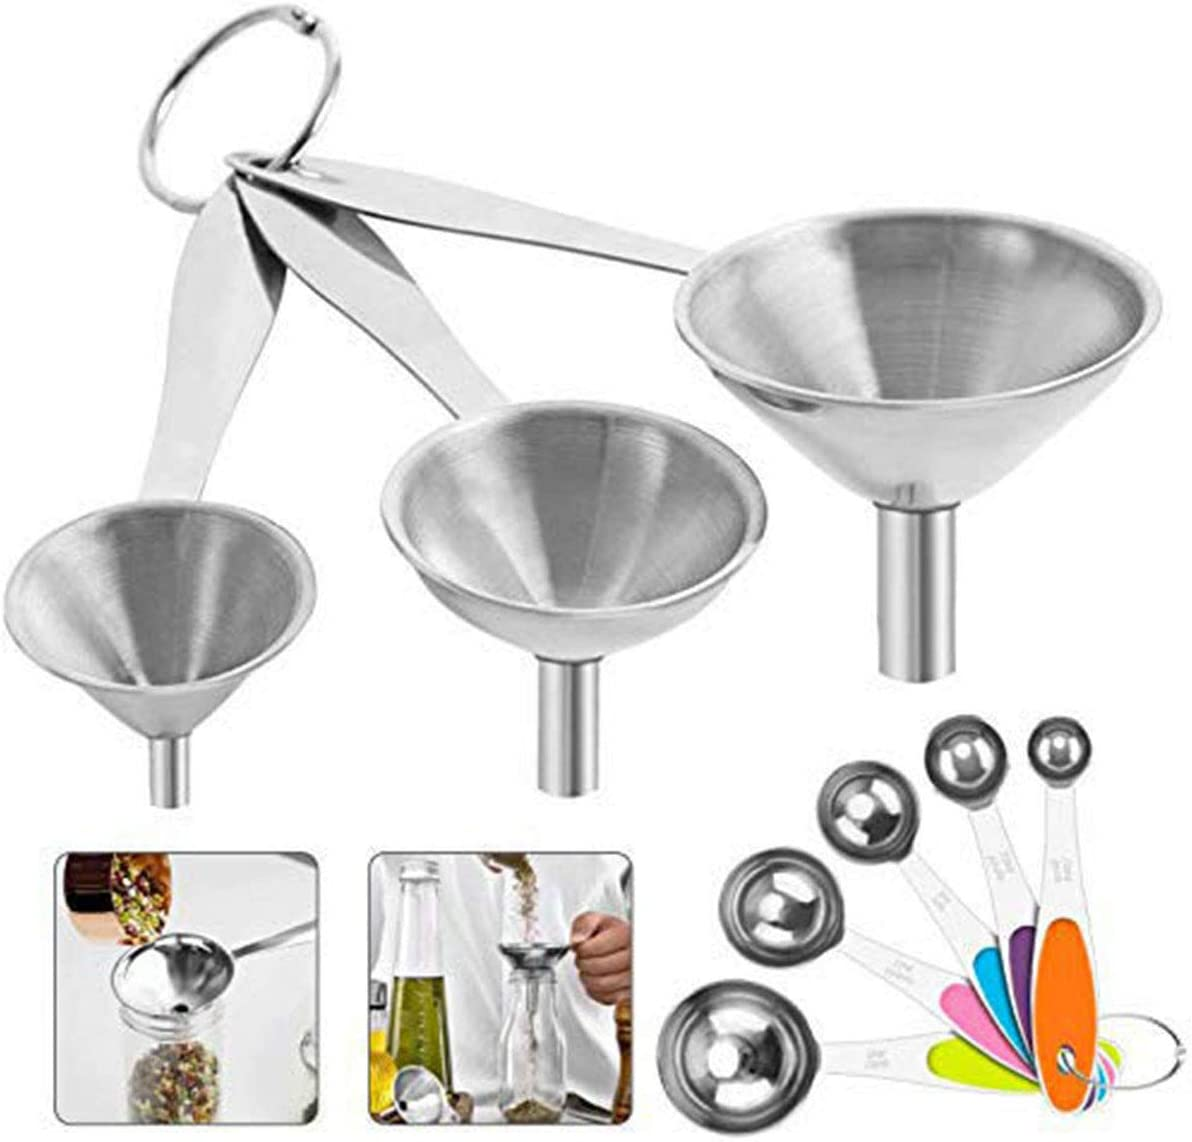 FPVERA Kitchen Funnels Mini Funnel 3 Pcs Stainless Steel Funnel Set and 5 Measuring Spoons Mental Strainer Funnel With Long Handle For Fluid Oil Powder Beans Jar Flask Powder